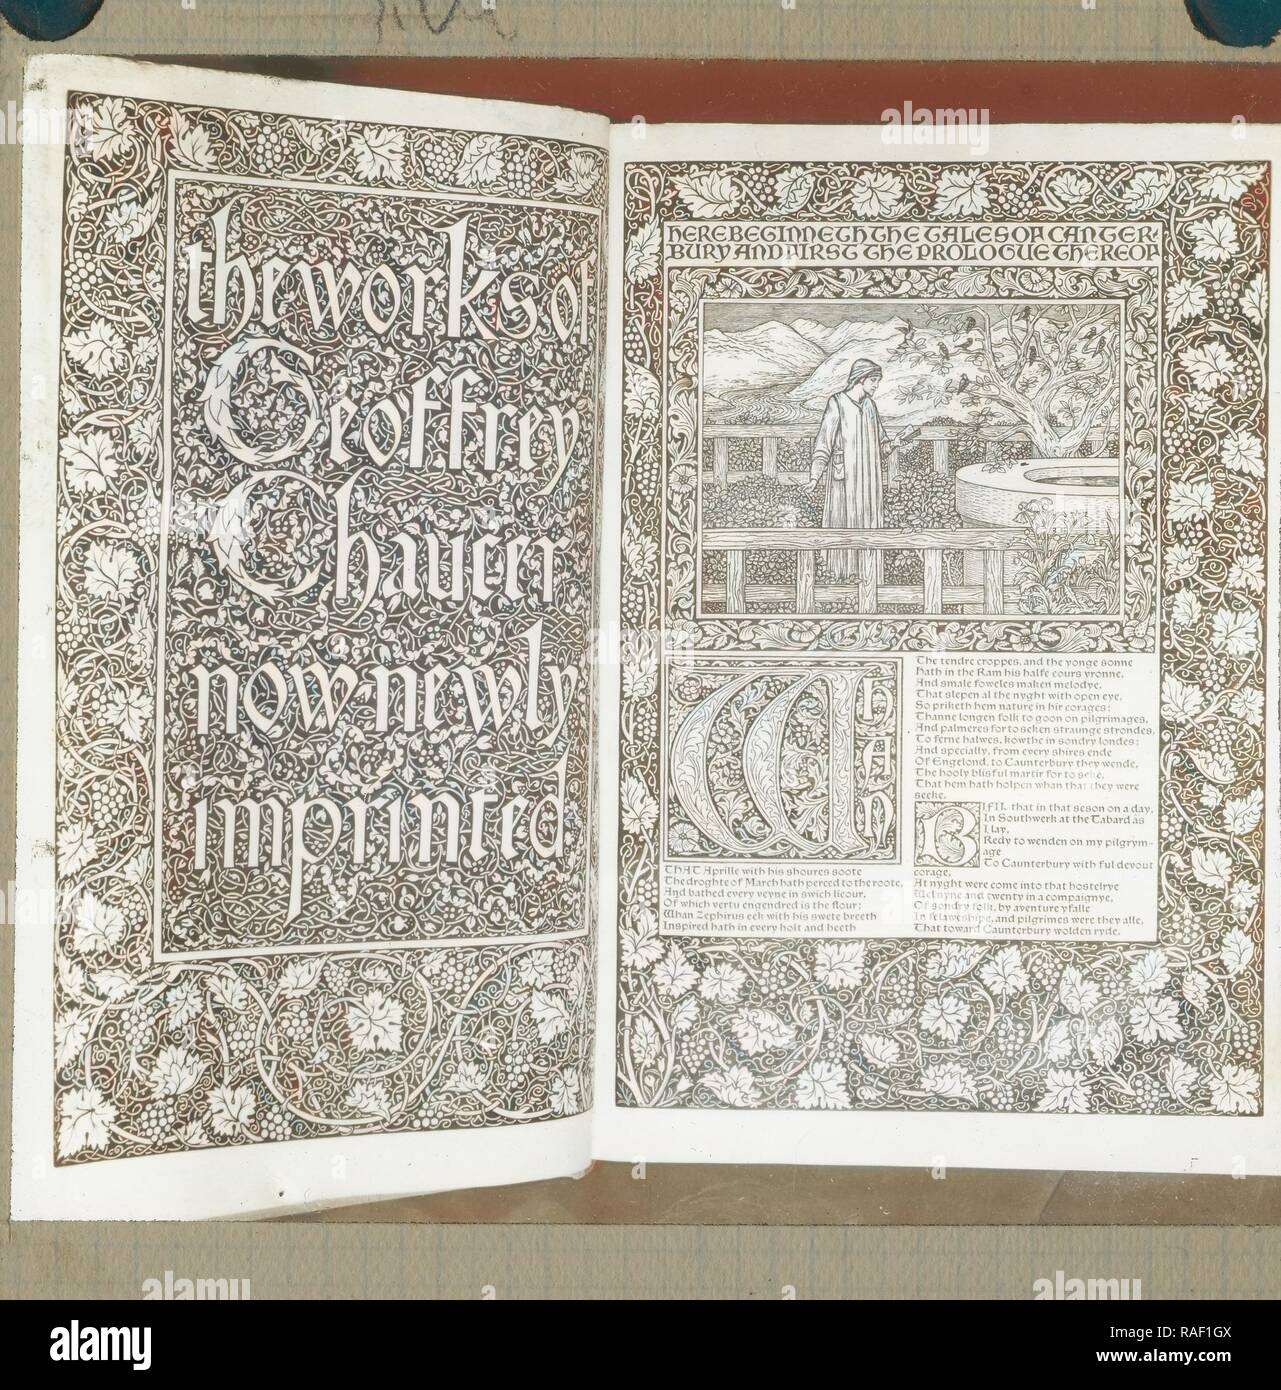 Title page and first page of The Works of Geoffrey Chaucer, Frederick H. Evans (British, 1853 - 1943), 1890 - 1899 reimagined - Stock Image